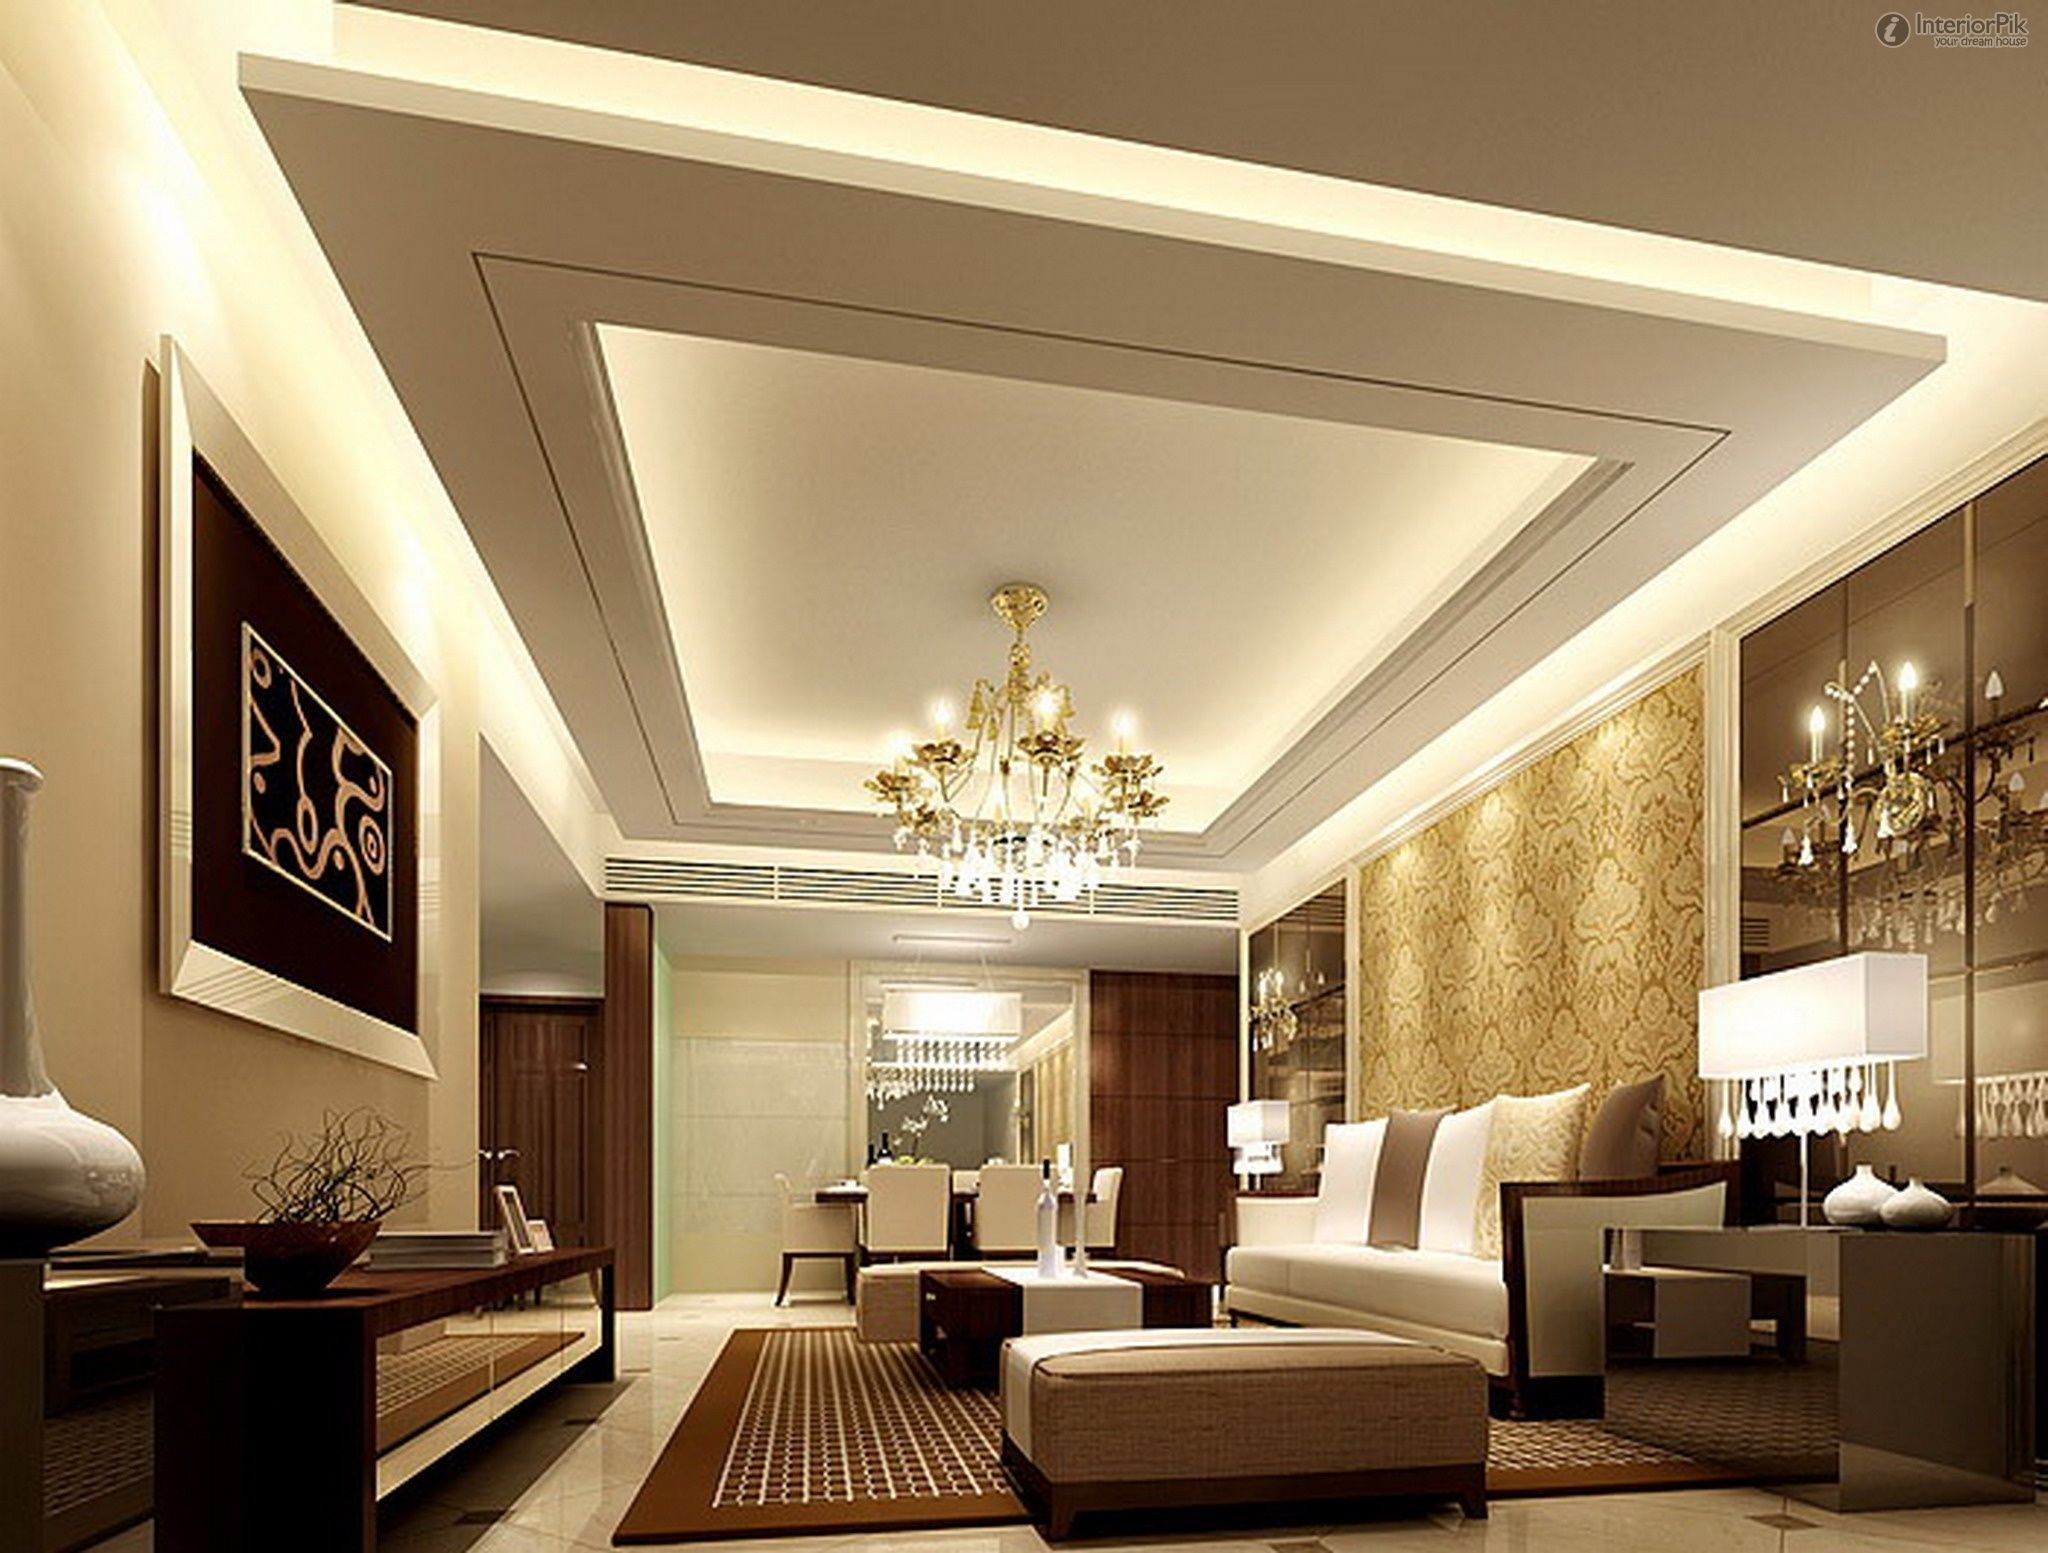 L Shaped Hall Ceiling Designs Unique Indirect Lighting In Tray Or Coffered Ceiling High Output Led Simple False Ceiling Design Ceiling Design Modern Pop False Ceiling Design